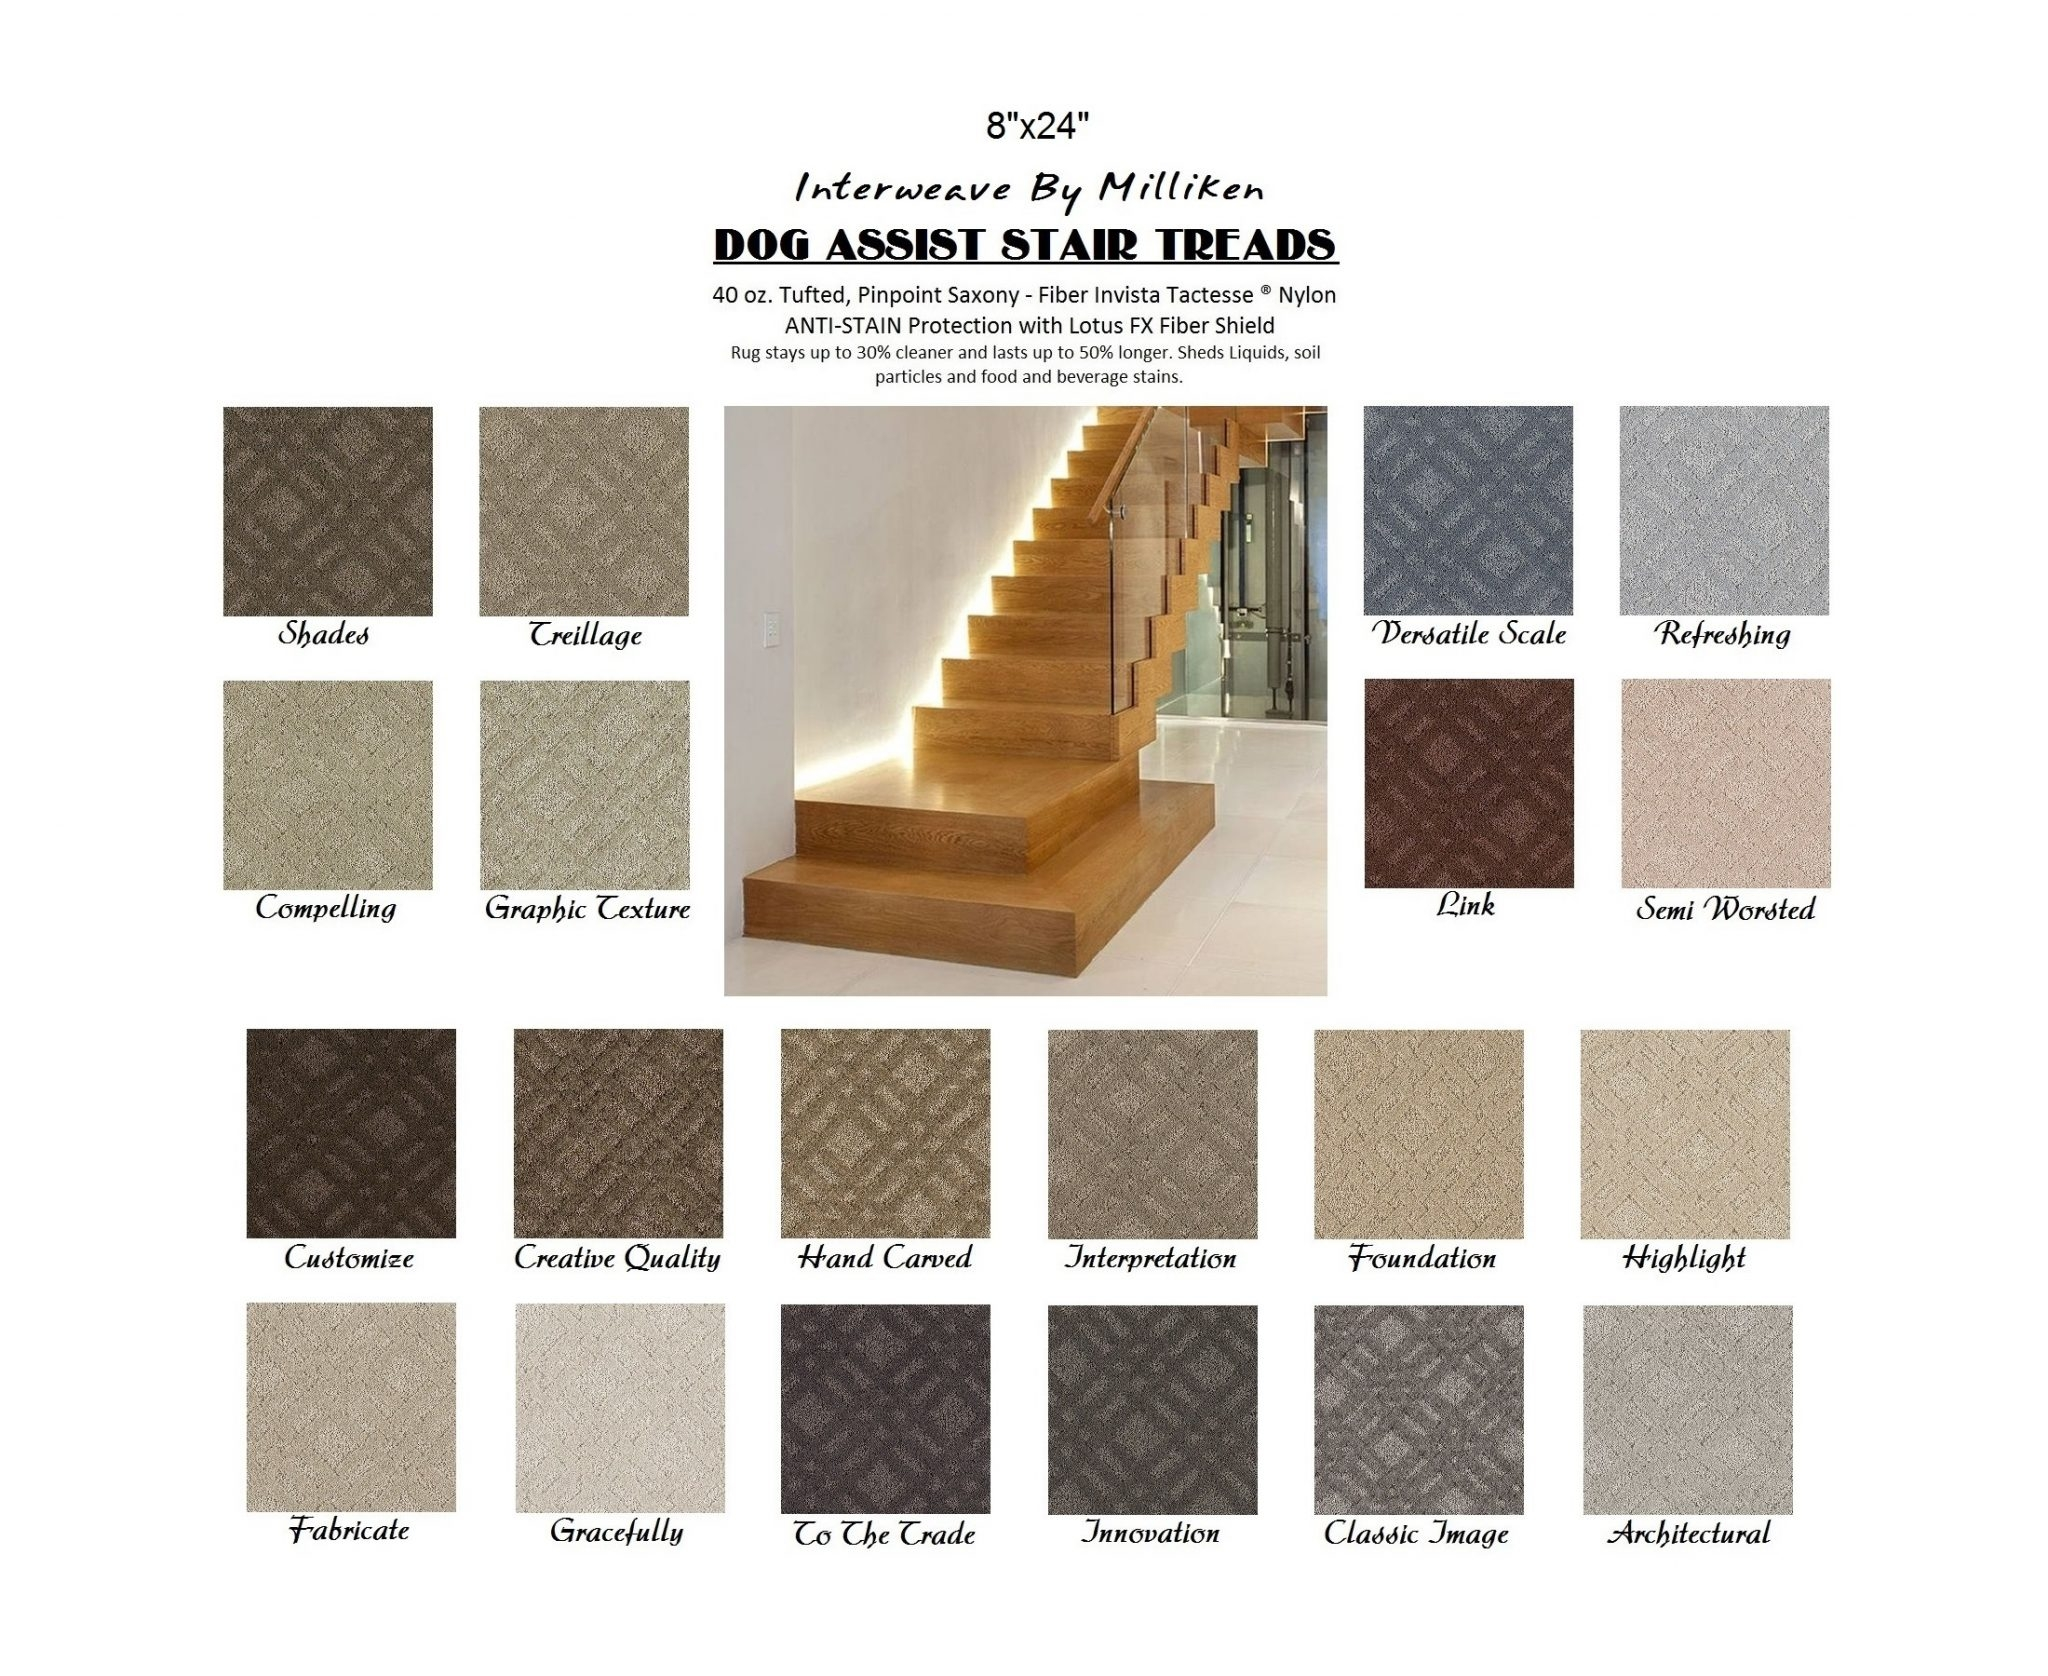 Dog Assist Carpet Stair Treads Within Carpet Stair Treads For Dogs (Image 5 of 15)